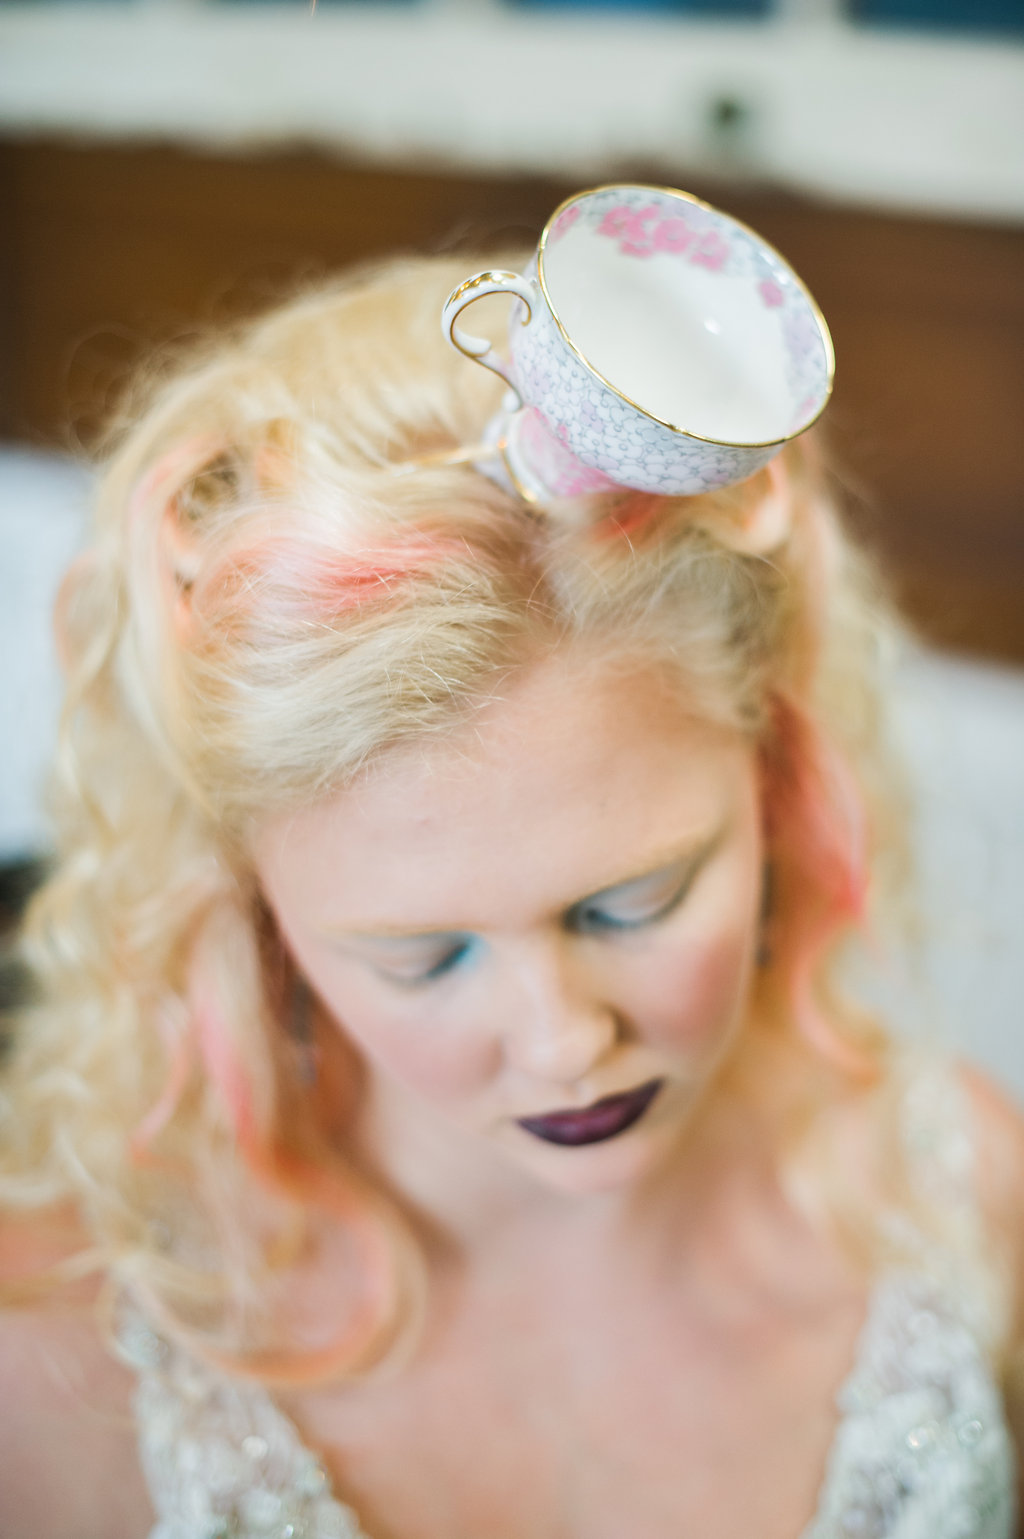 alice-in-wonderland-wedding-rach-lea-photography-rach-loves-troy-photography-ivory-and-beau-bridal-boutique-soho-cafe-savannah-wedding-venue-savannah-weddings-savannah-wedding-planner-sarah-seven-golden-lights-blushing-forever-september-10.jpg